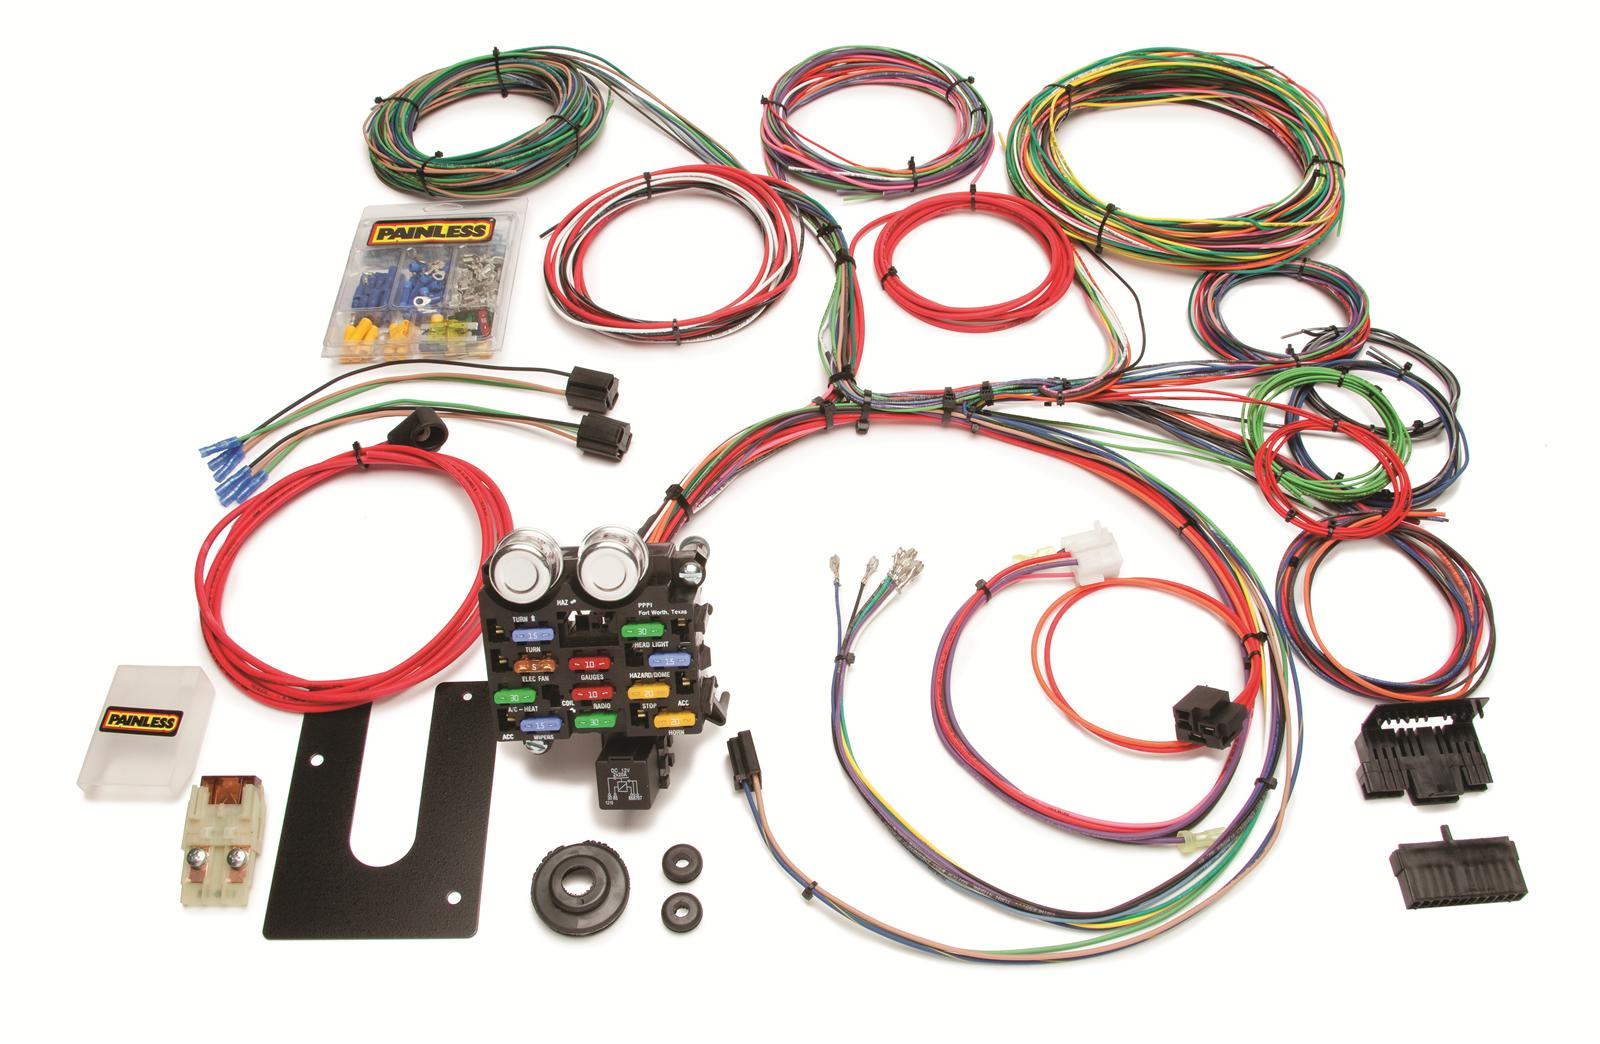 Painless Performance 21-Circuit Universal Harnesses 10101 - Free Shipping  on Orders Over $49 at Summit Racing